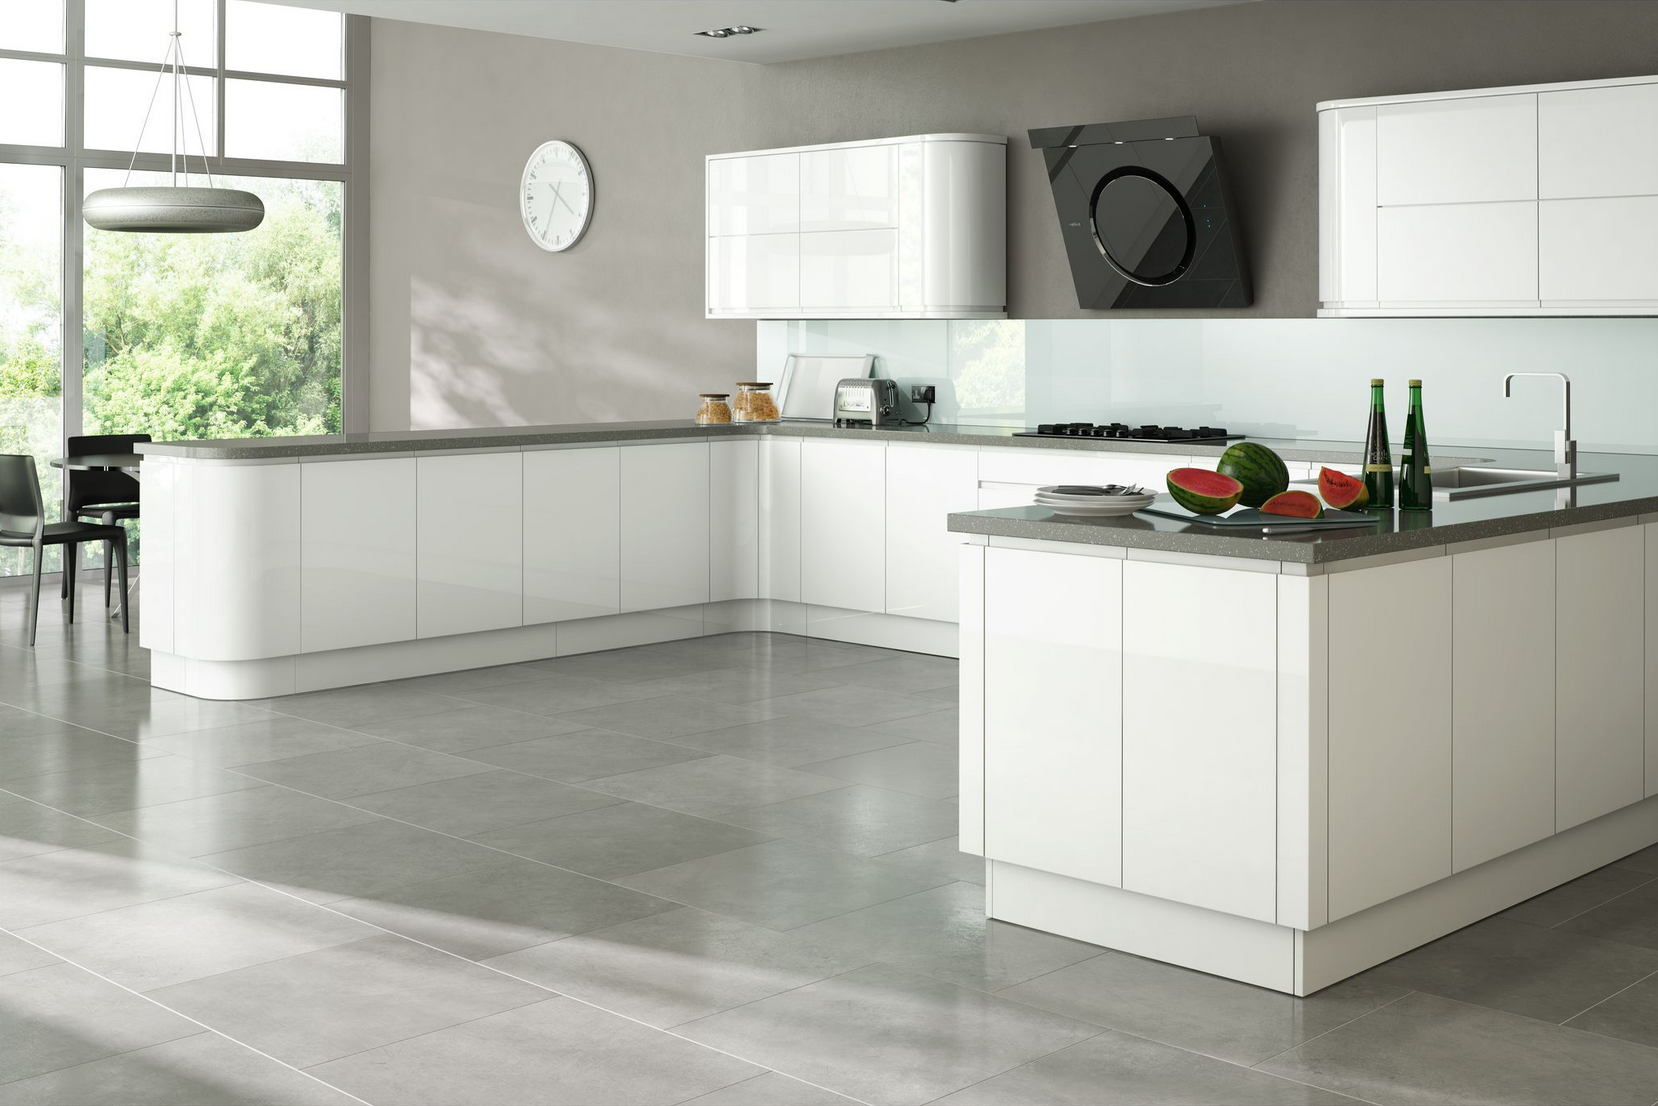 Larissa white gloss handleless kitchen proline cabinets for Kitchen ideas high gloss